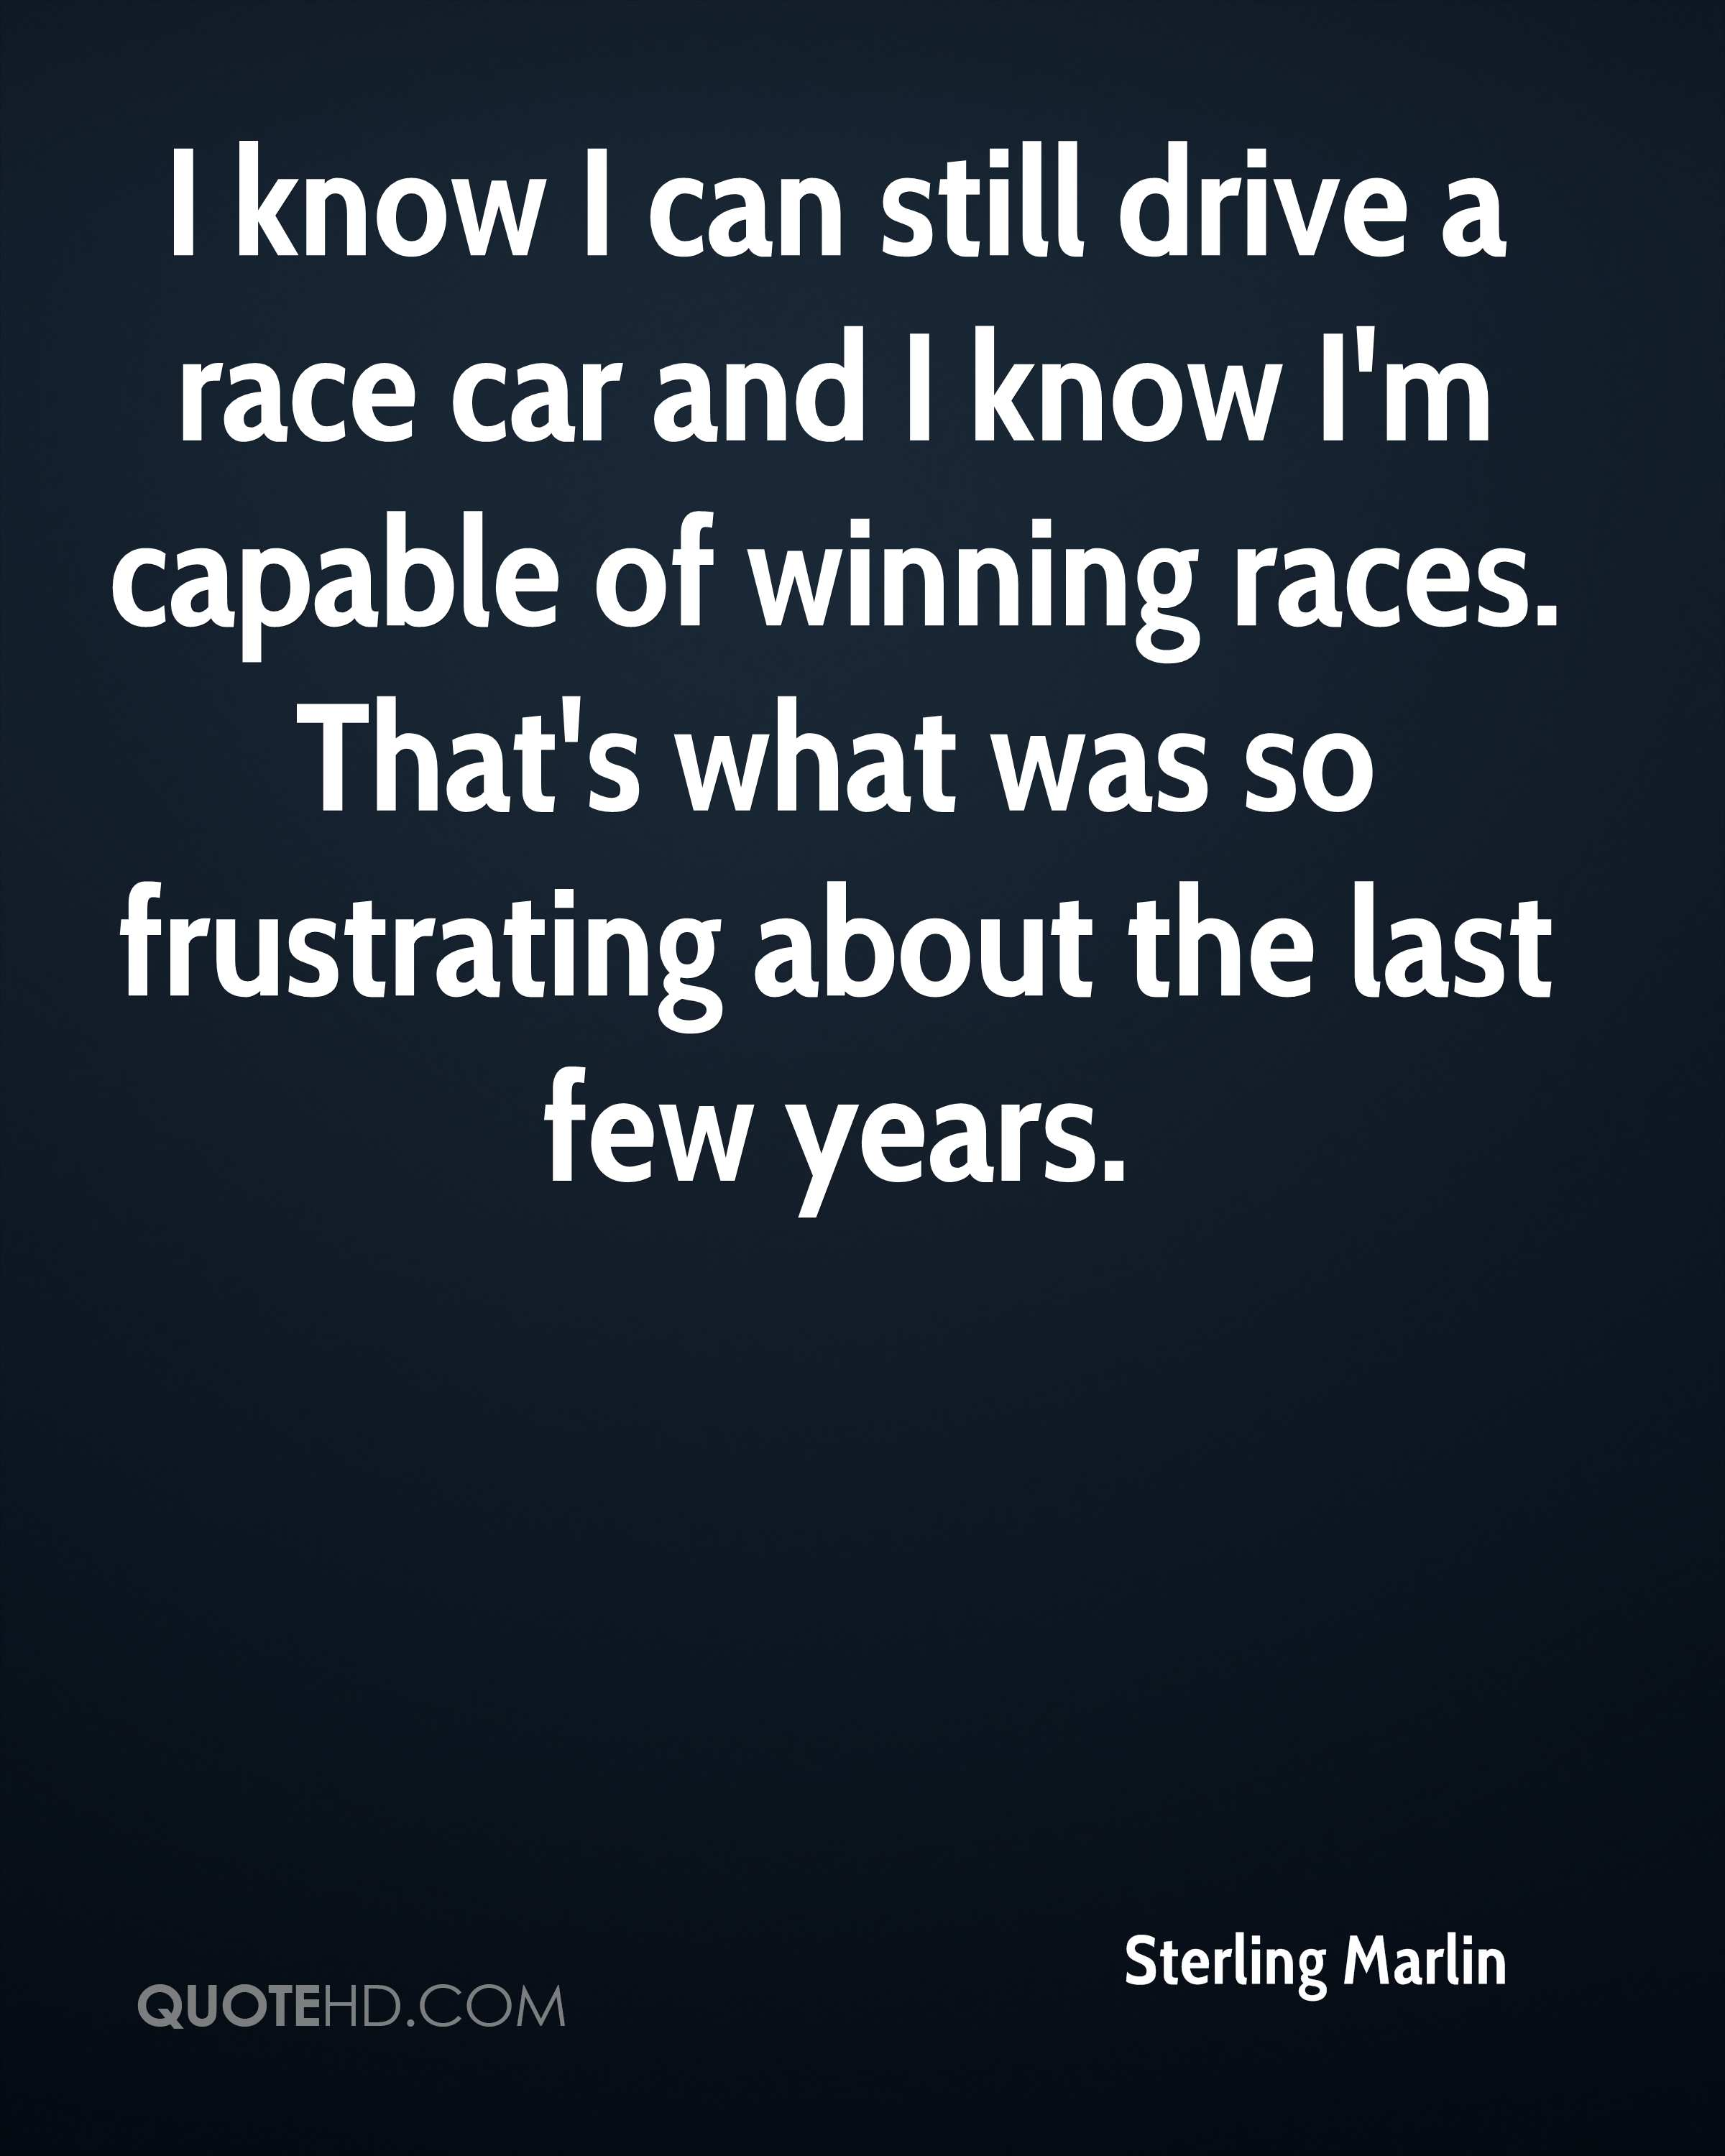 Race Car Quotes Sterling Marlin Quotes  Quotehd